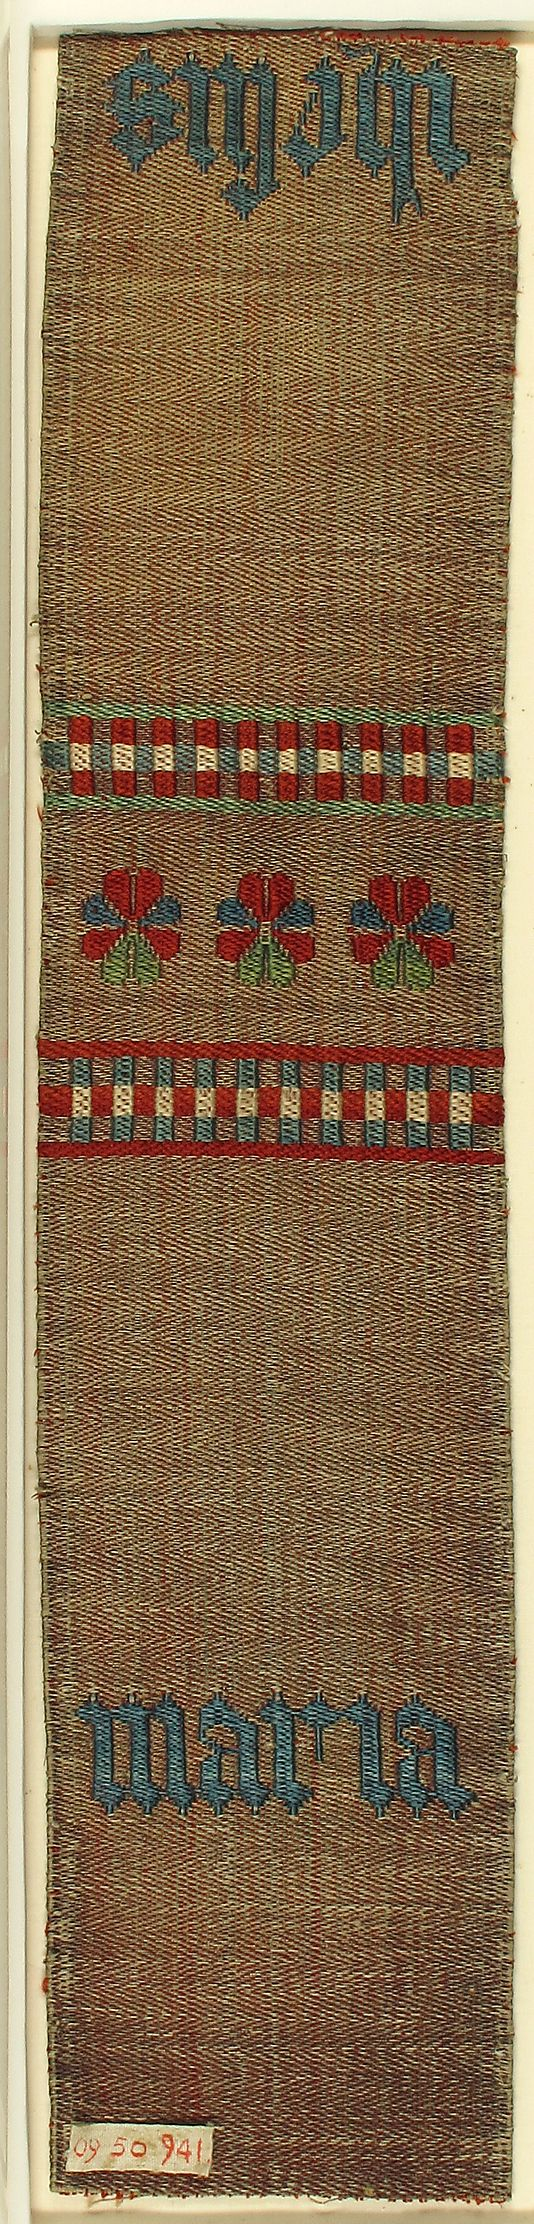 Textile Band Date: 15th century Geography: Made in Cologne, Germany Culture: German Medium: Silk, linen and metal thread Accession Number: 09.50.941